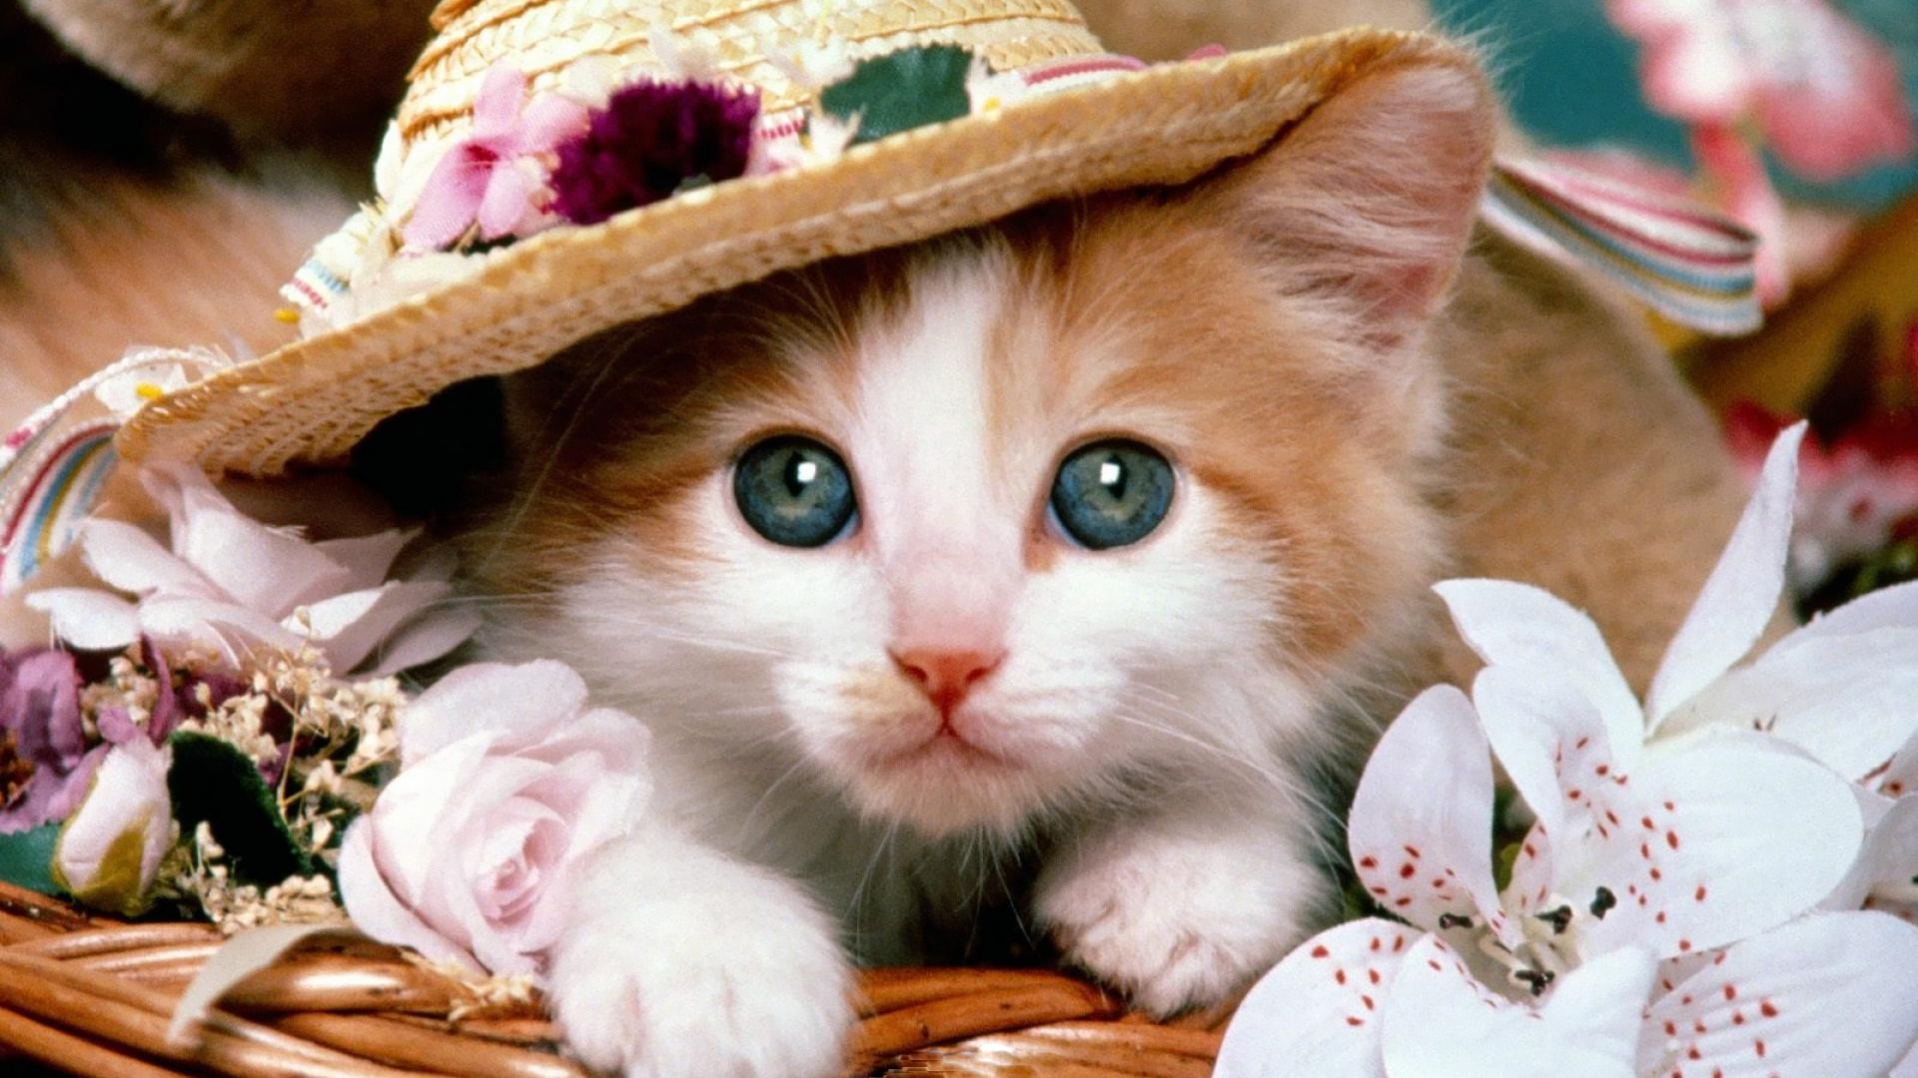 Beautiful Hat And Cute Free Cat Hd Widescreen Wallpaper Hd Wallpaper